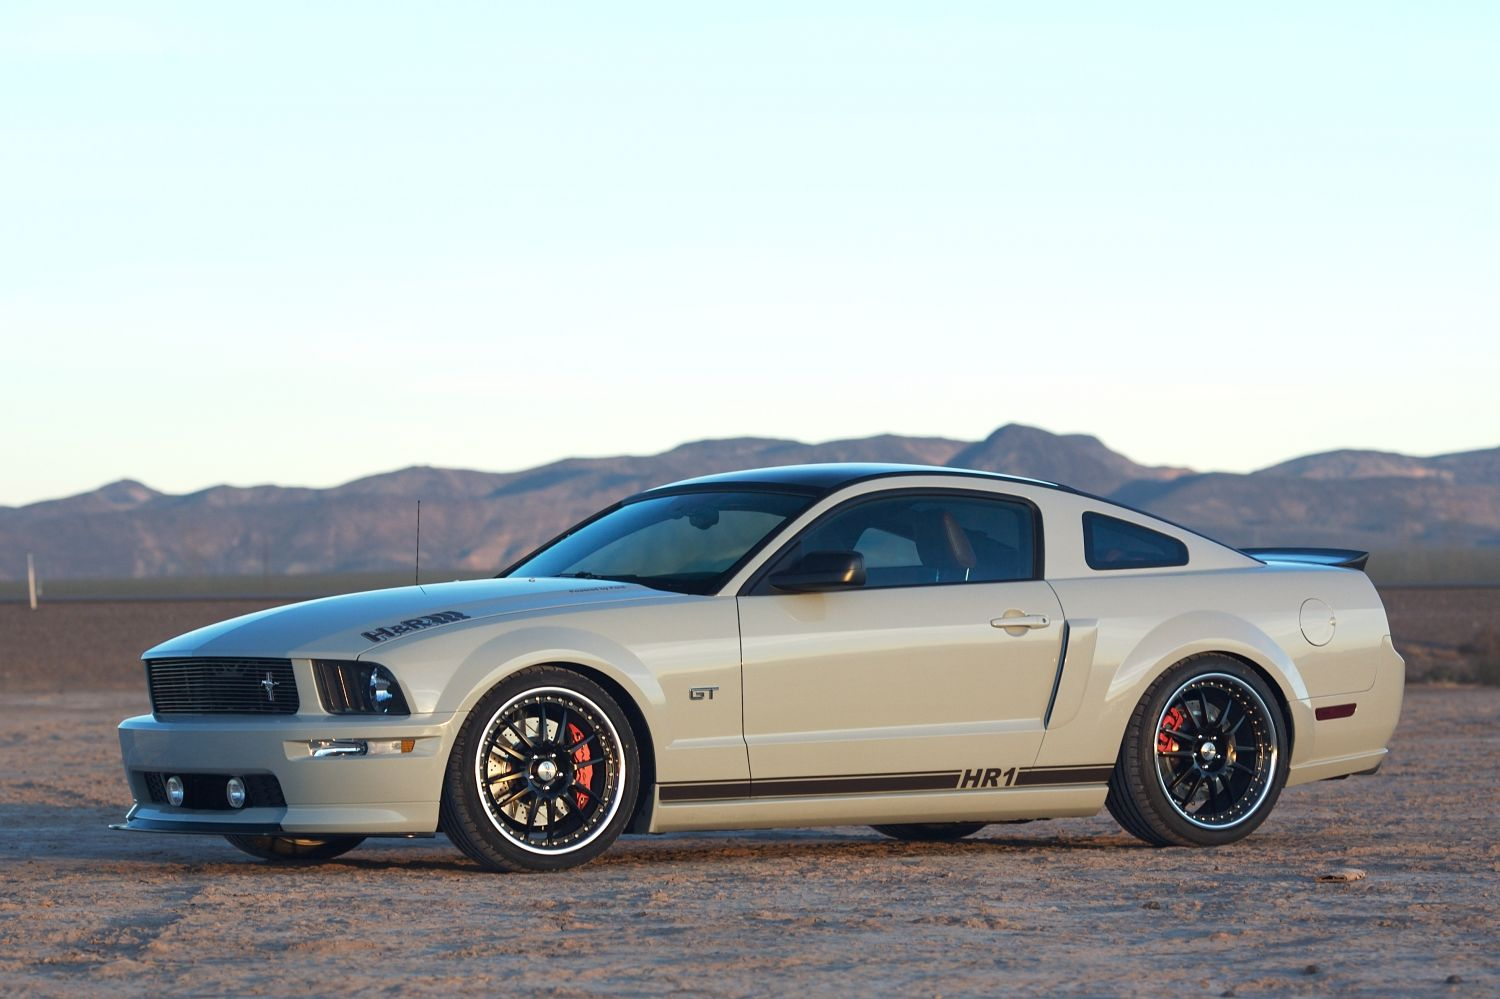 H Amp R Ford Mustang Hr1 Fmj H Amp R Special Springs Lp